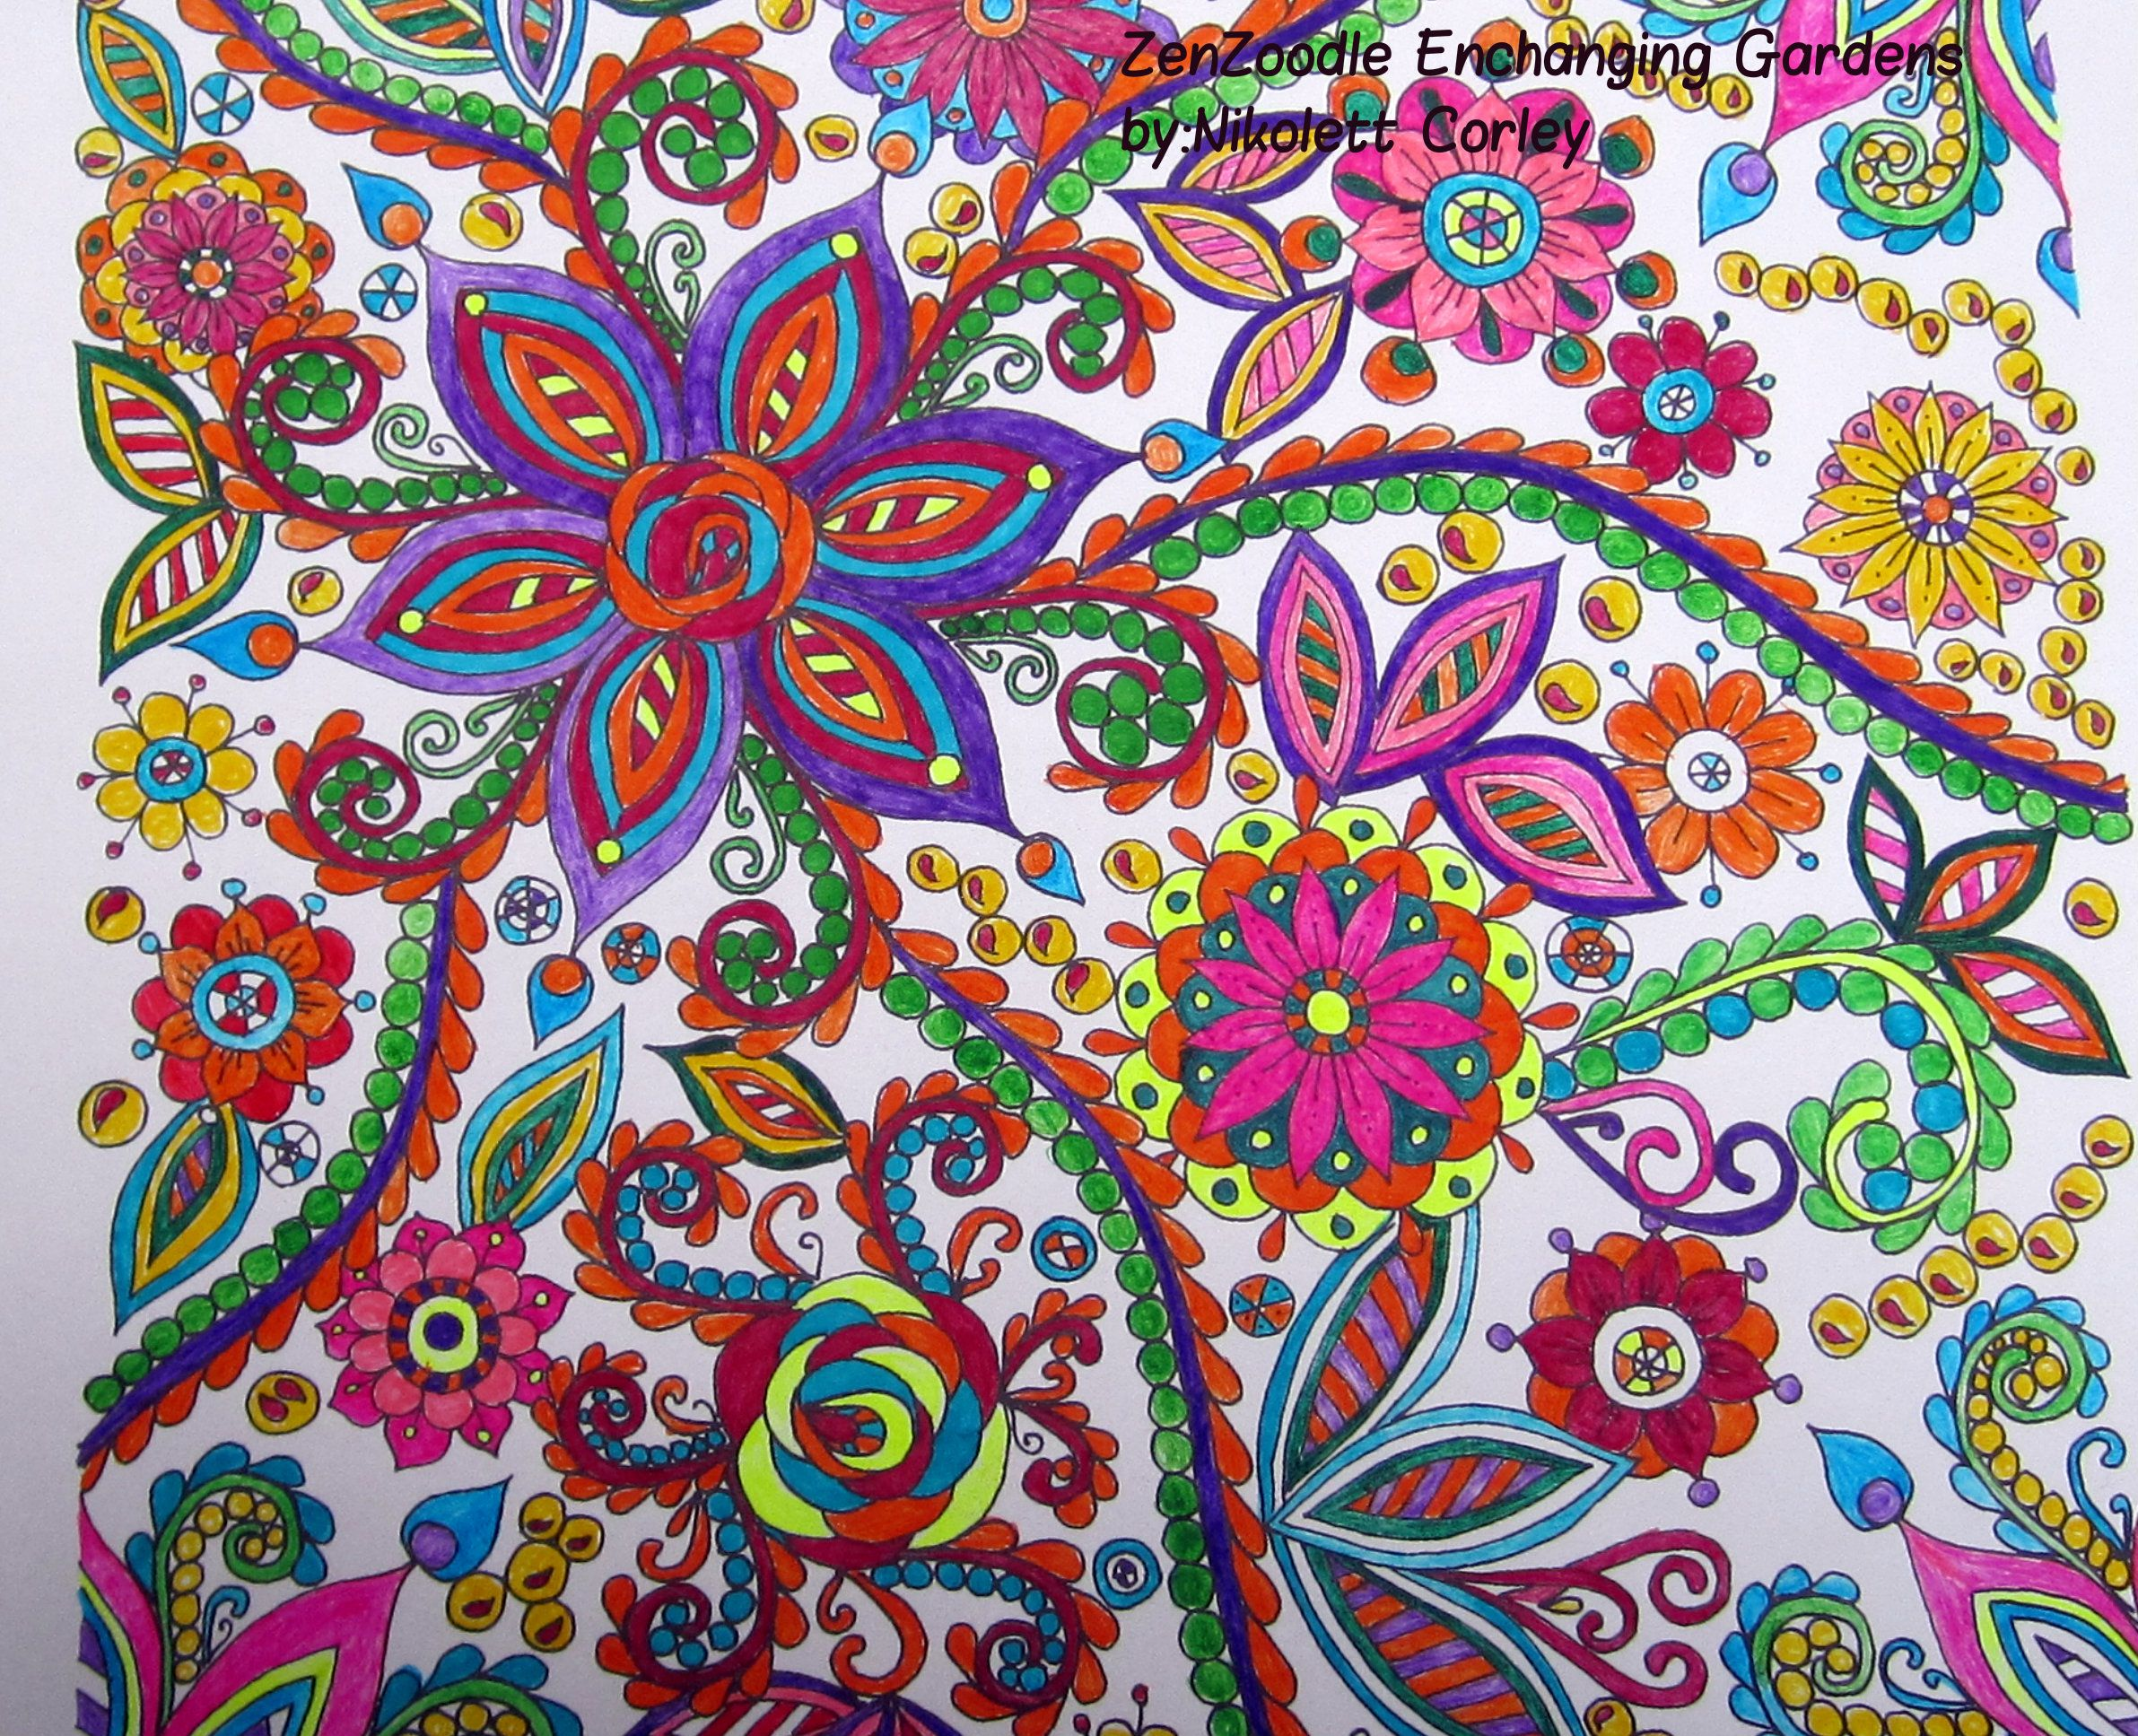 Zendoodle coloring enchanting gardens - This Is From Zendoodle Enchanting Gardens Coloring Book I Used Micro Fine Point Ink Pens